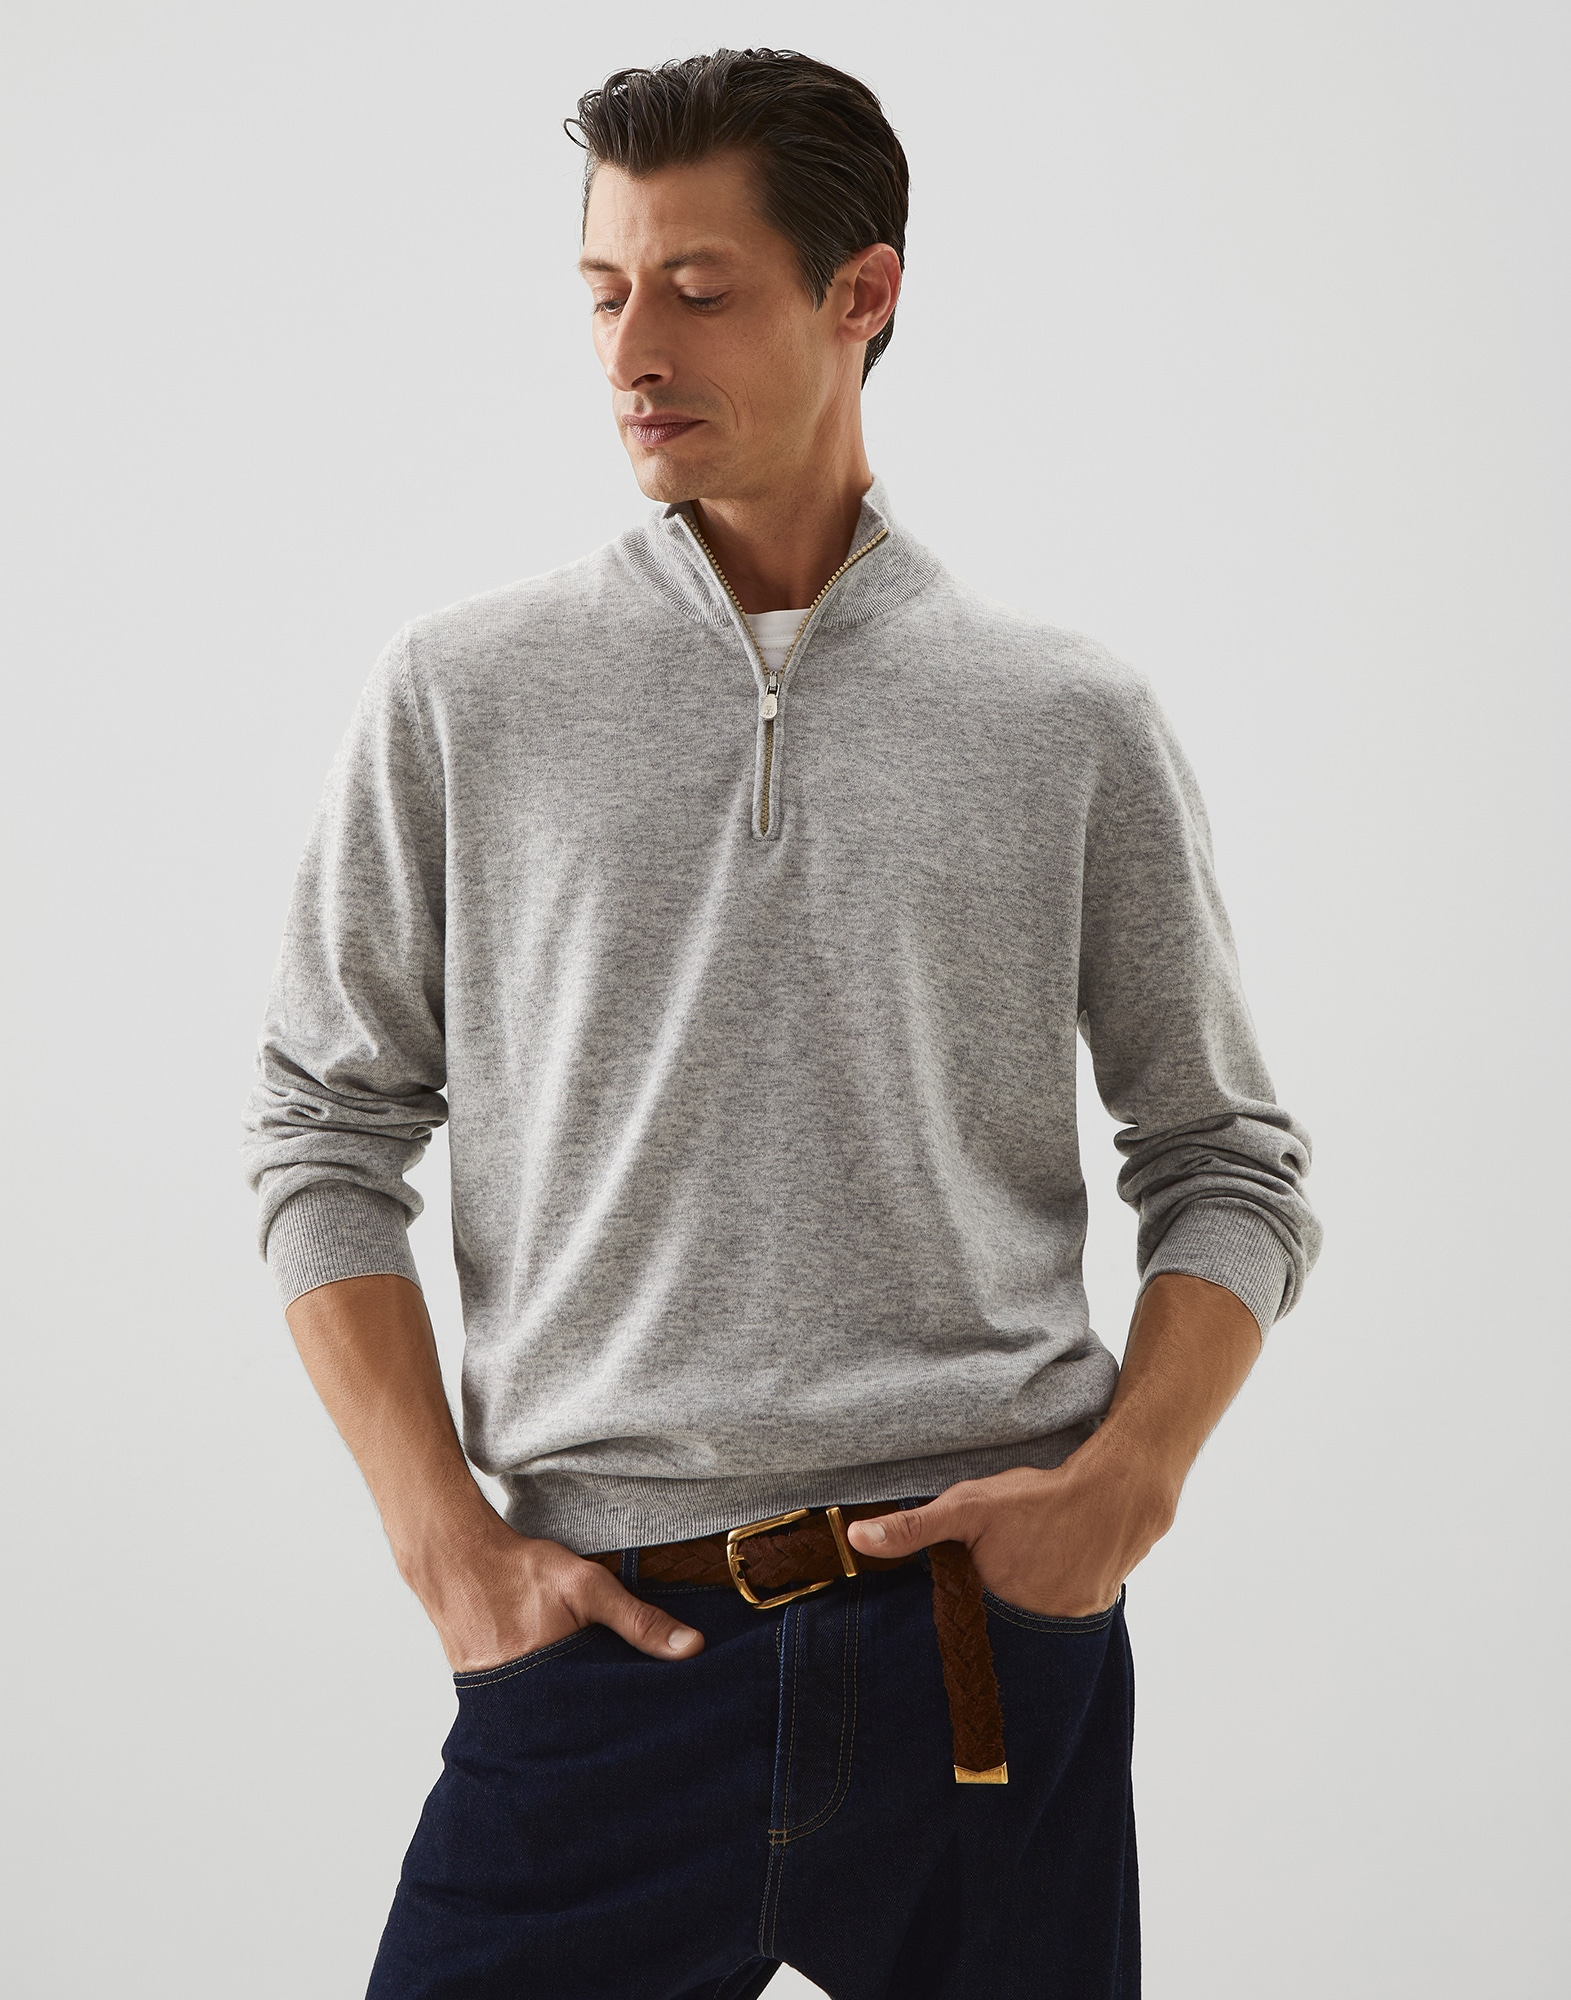 High Neck Sweater Pebble Man 1 - Brunello Cucinelli